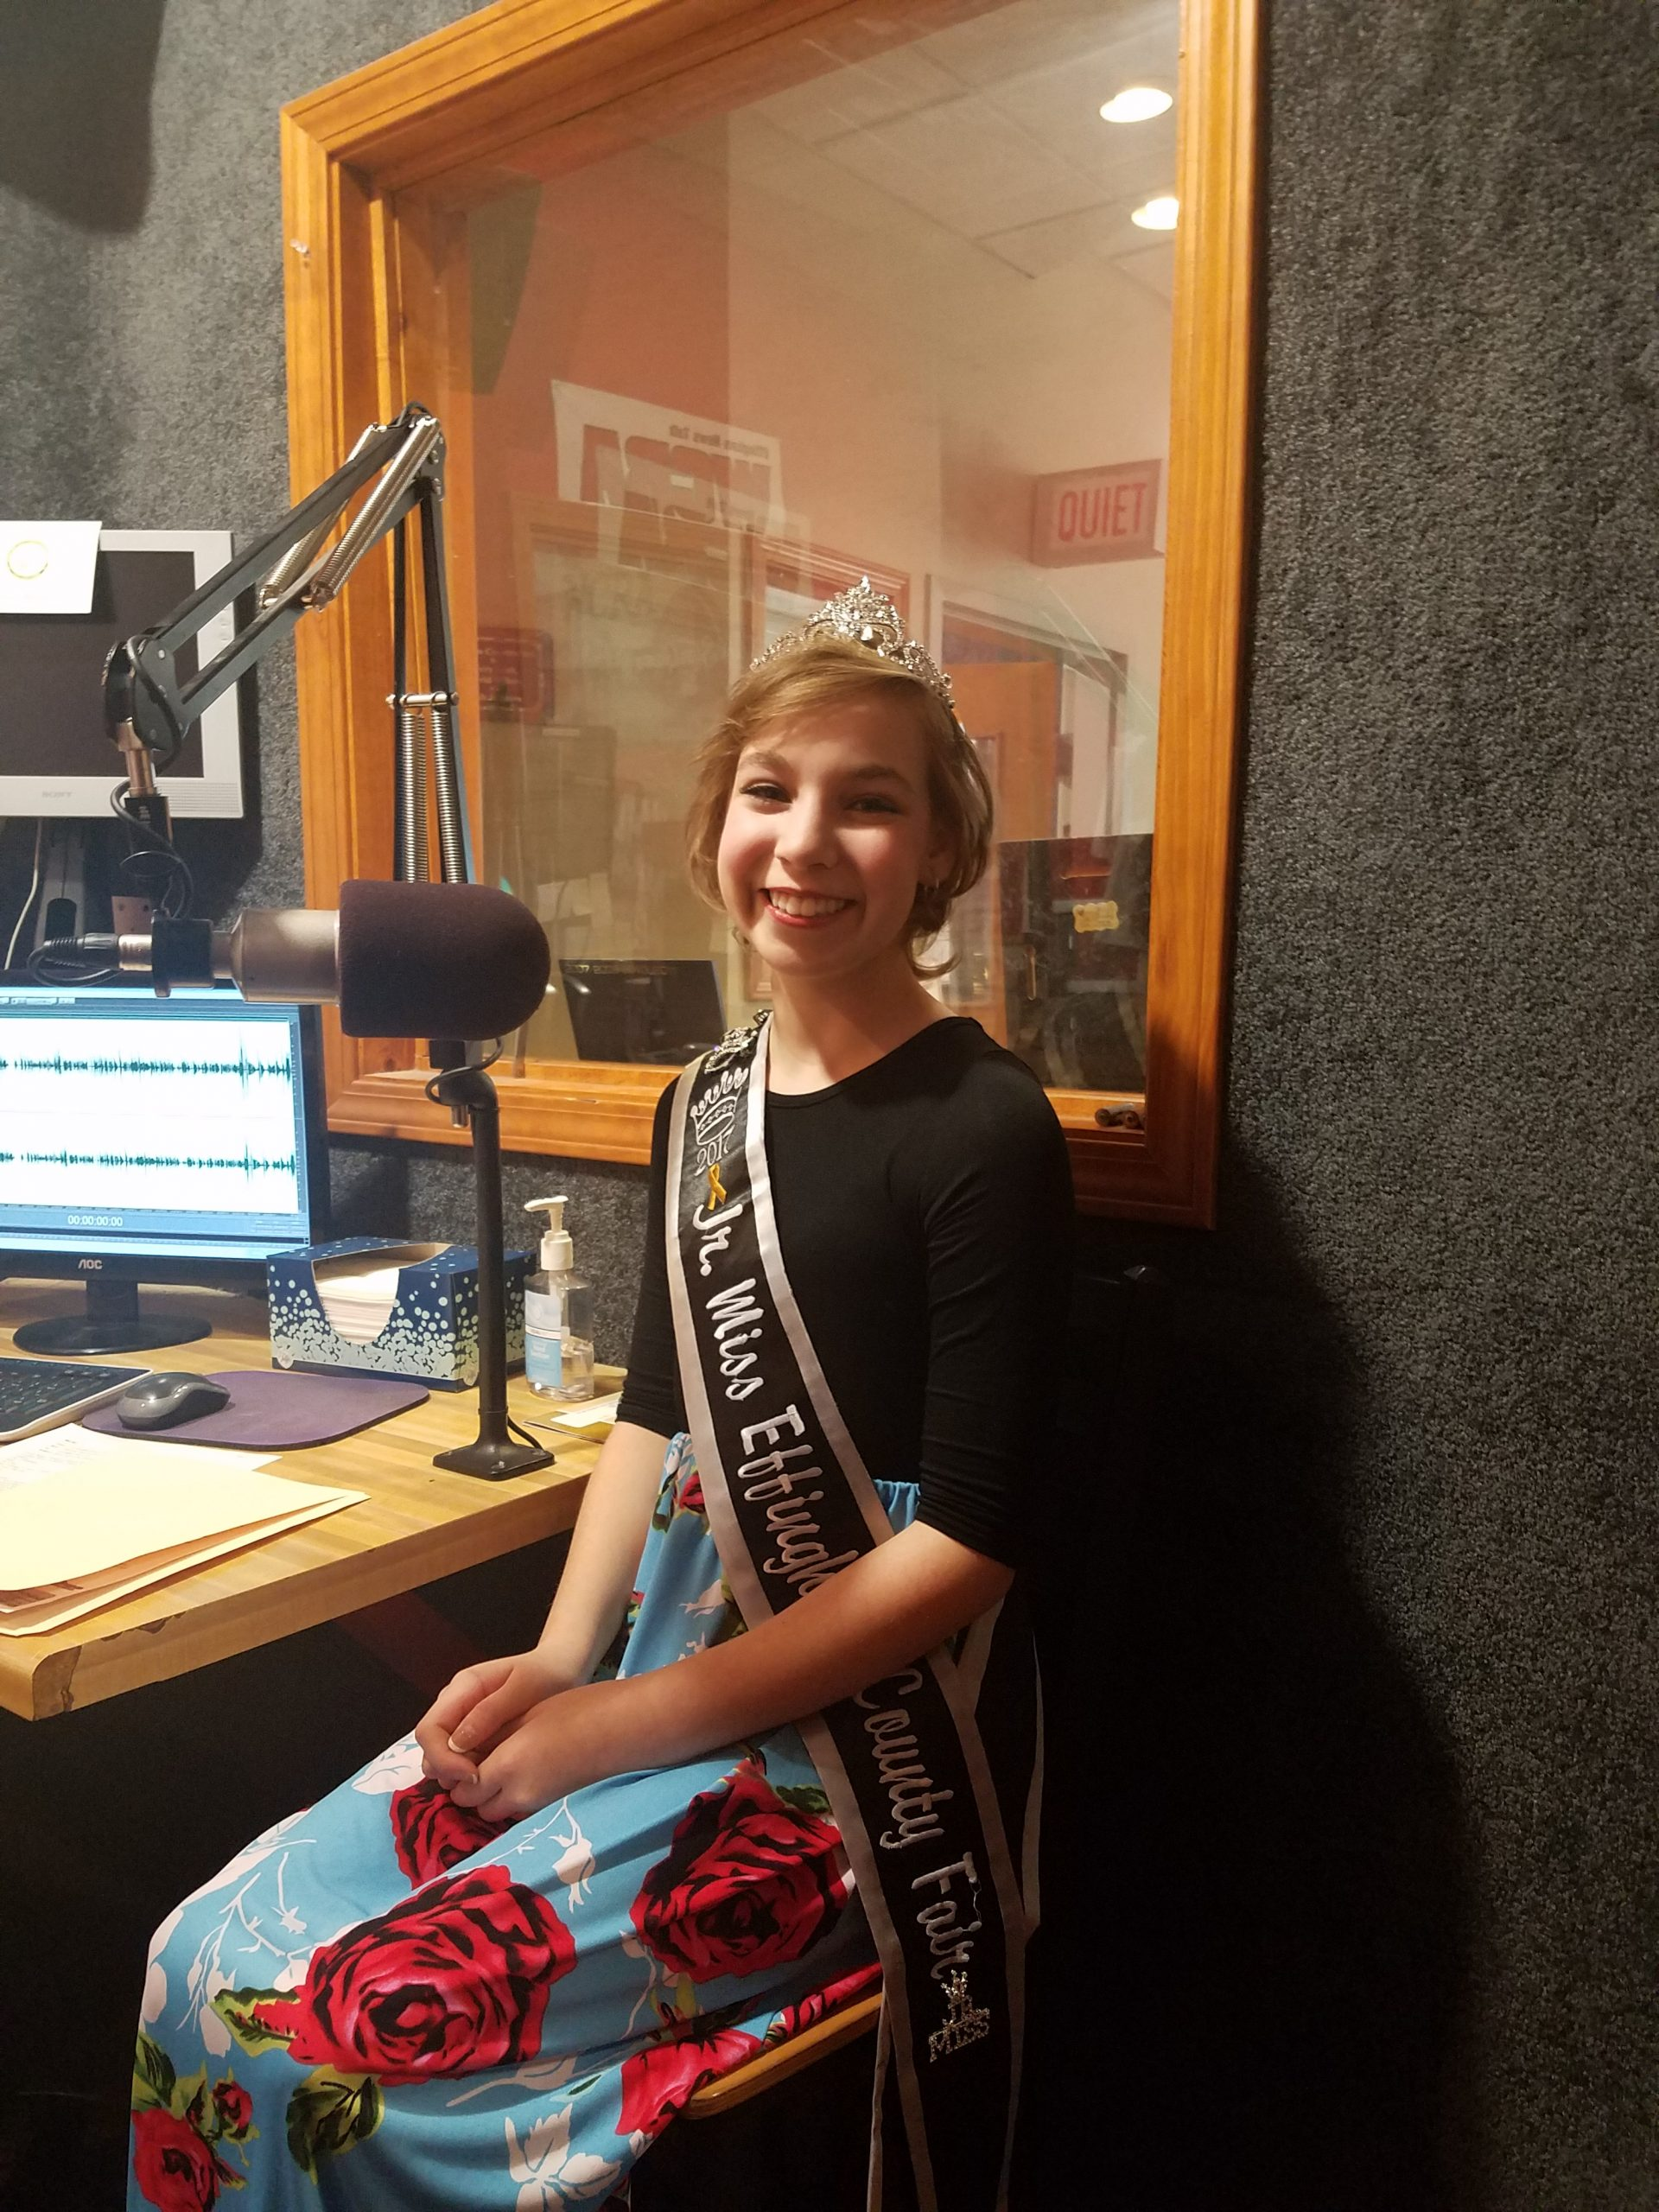 #ICYMI: 2017 Jr Miss Effingham County Fair Queen Talks About Project With Children's Miracle Network Hospital Service Project